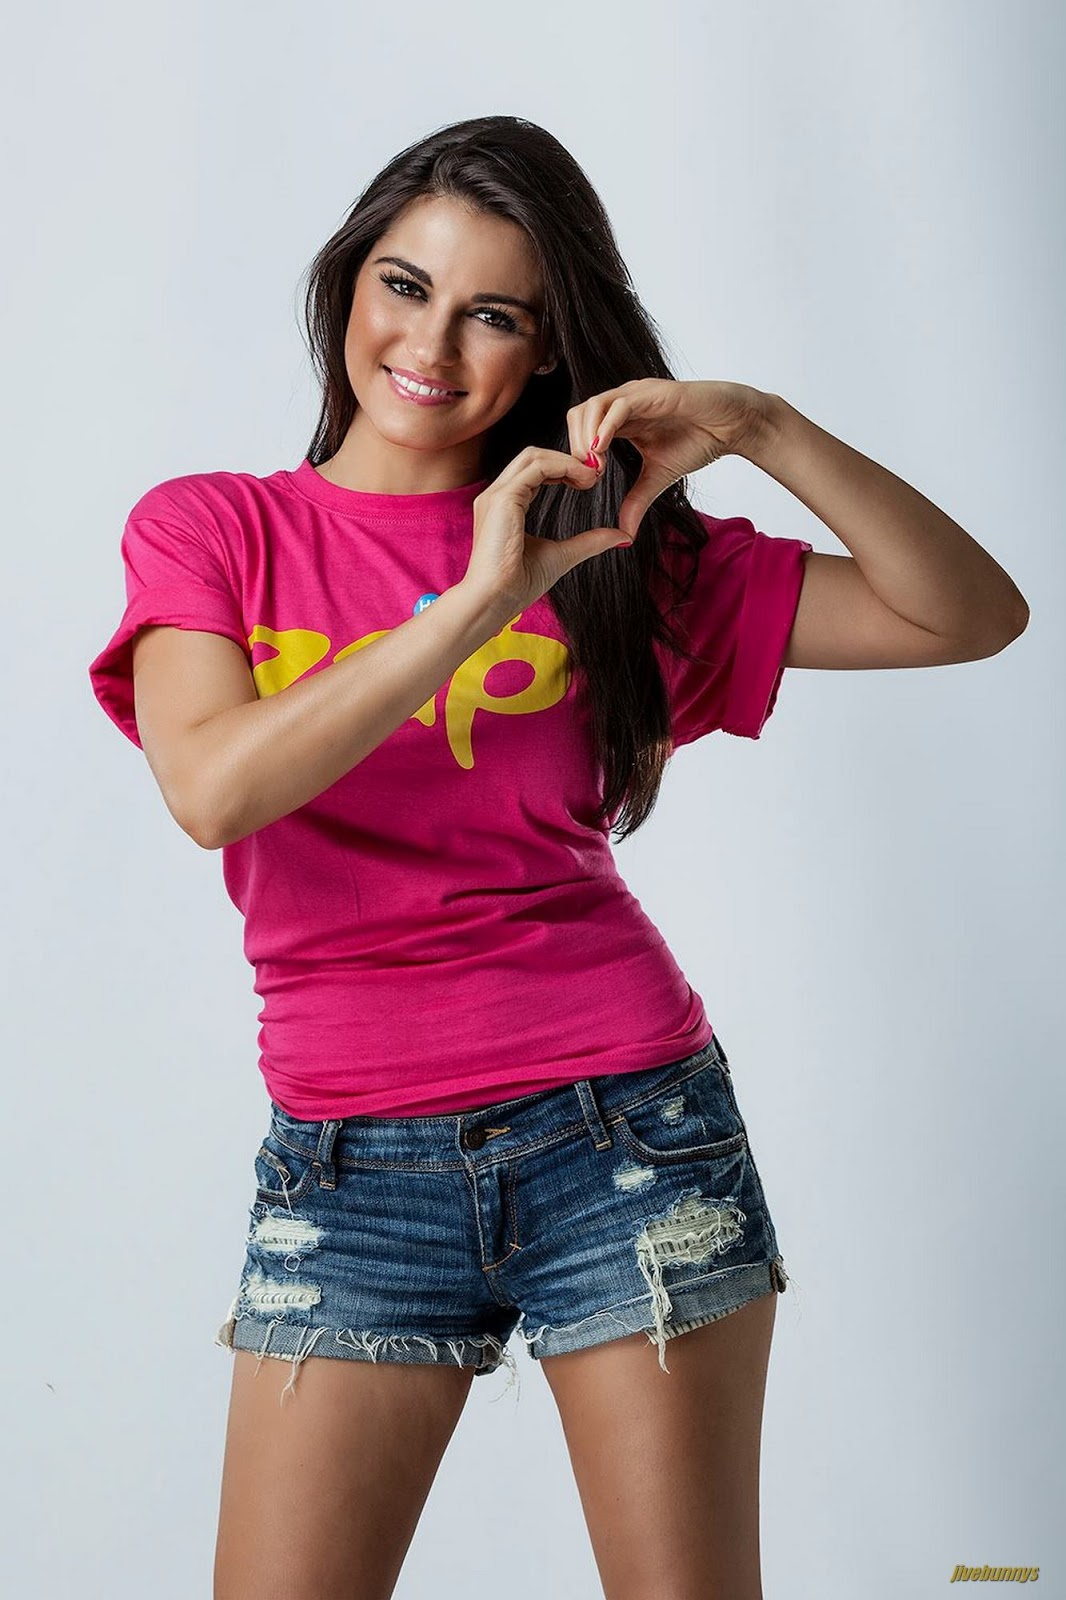 The Maite perroni xxx you